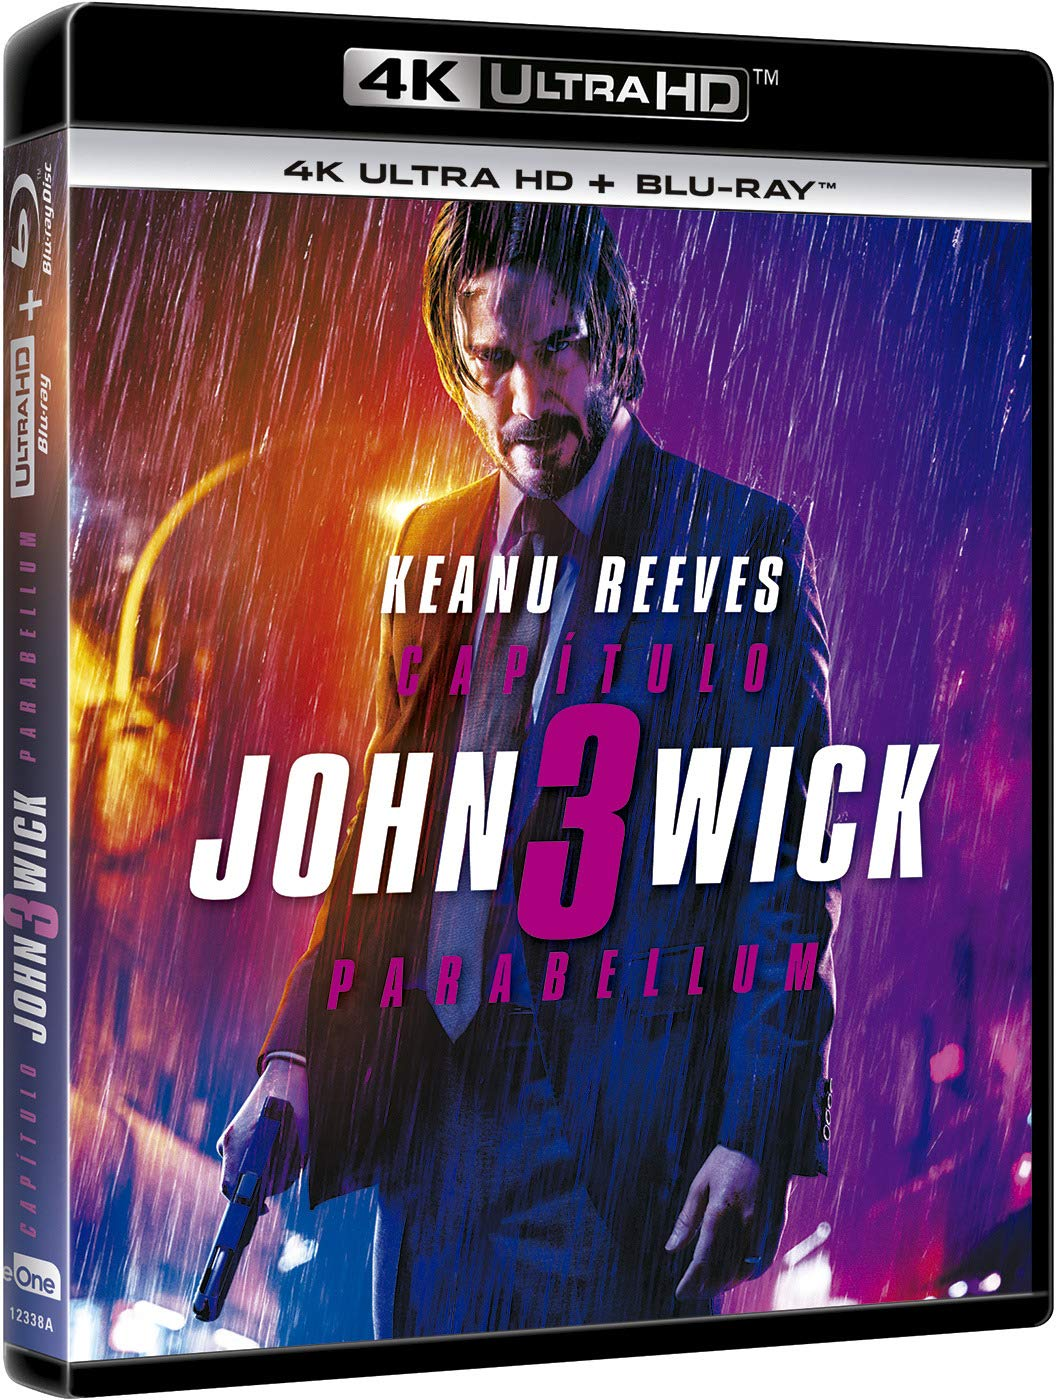 John Wick 3 Parabellum 4K Ultra HD + Blu-ray Blu-ray: Amazon.es: Keanu Reeves, Halle Berry, Ian McShane , Chad Stahelski, Keanu Reeves, Halle Berry, Summit Entertainment, 87Eleven, Lionsgate, Thunder Road Pictures: Cine